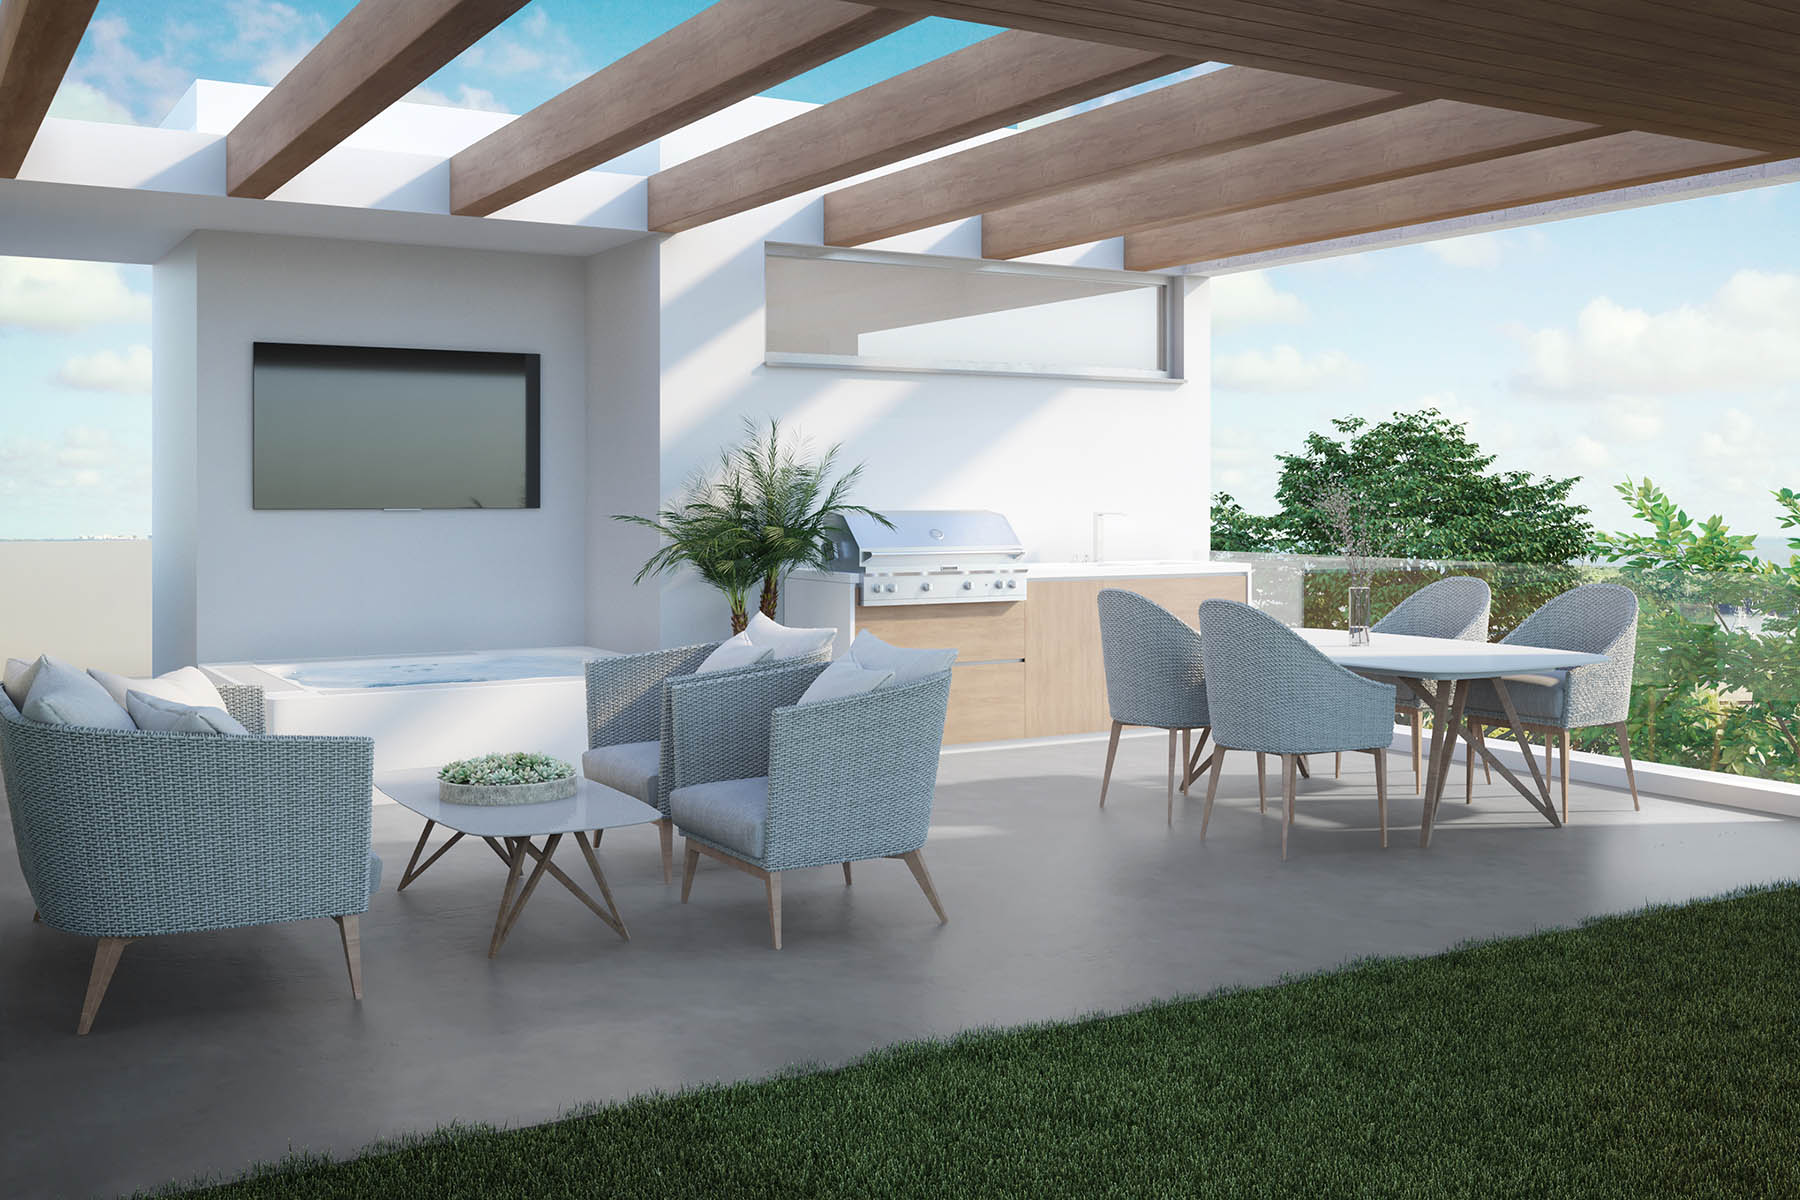 townhouses for Active at 2926 Bird Avenue 1 Coconut Grove, Florida 33133 United States